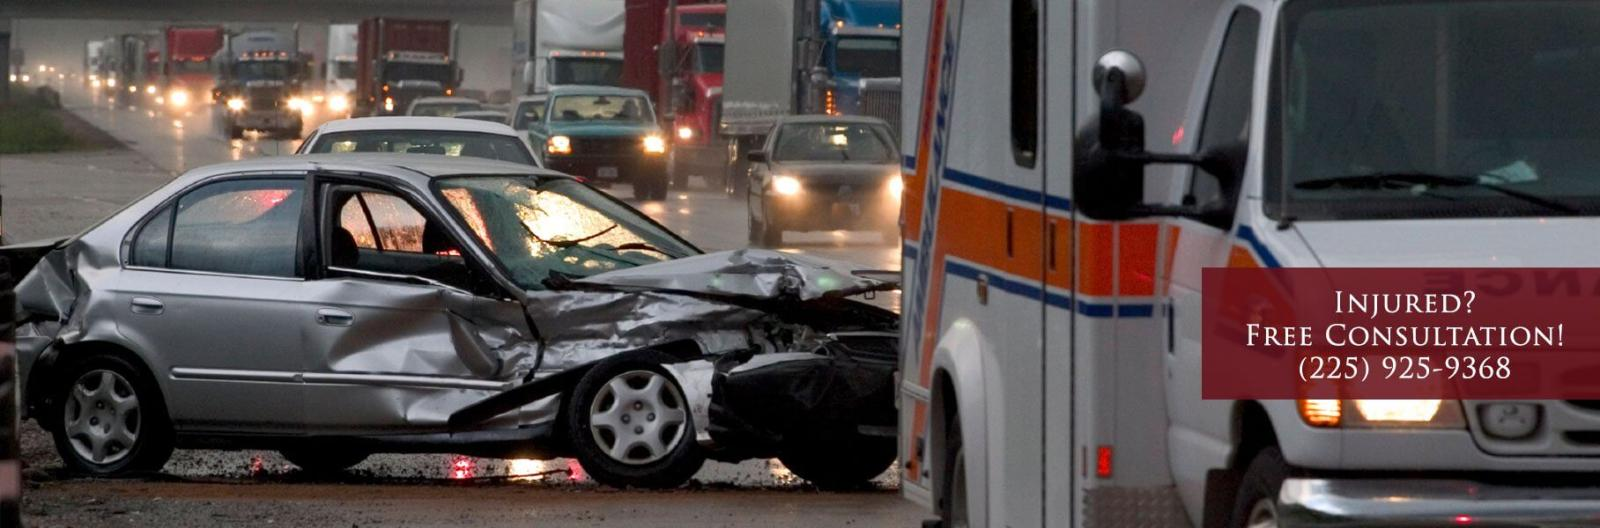 Car Accidents - Finch Davis - Baton Rouge Personal Injury Attorney